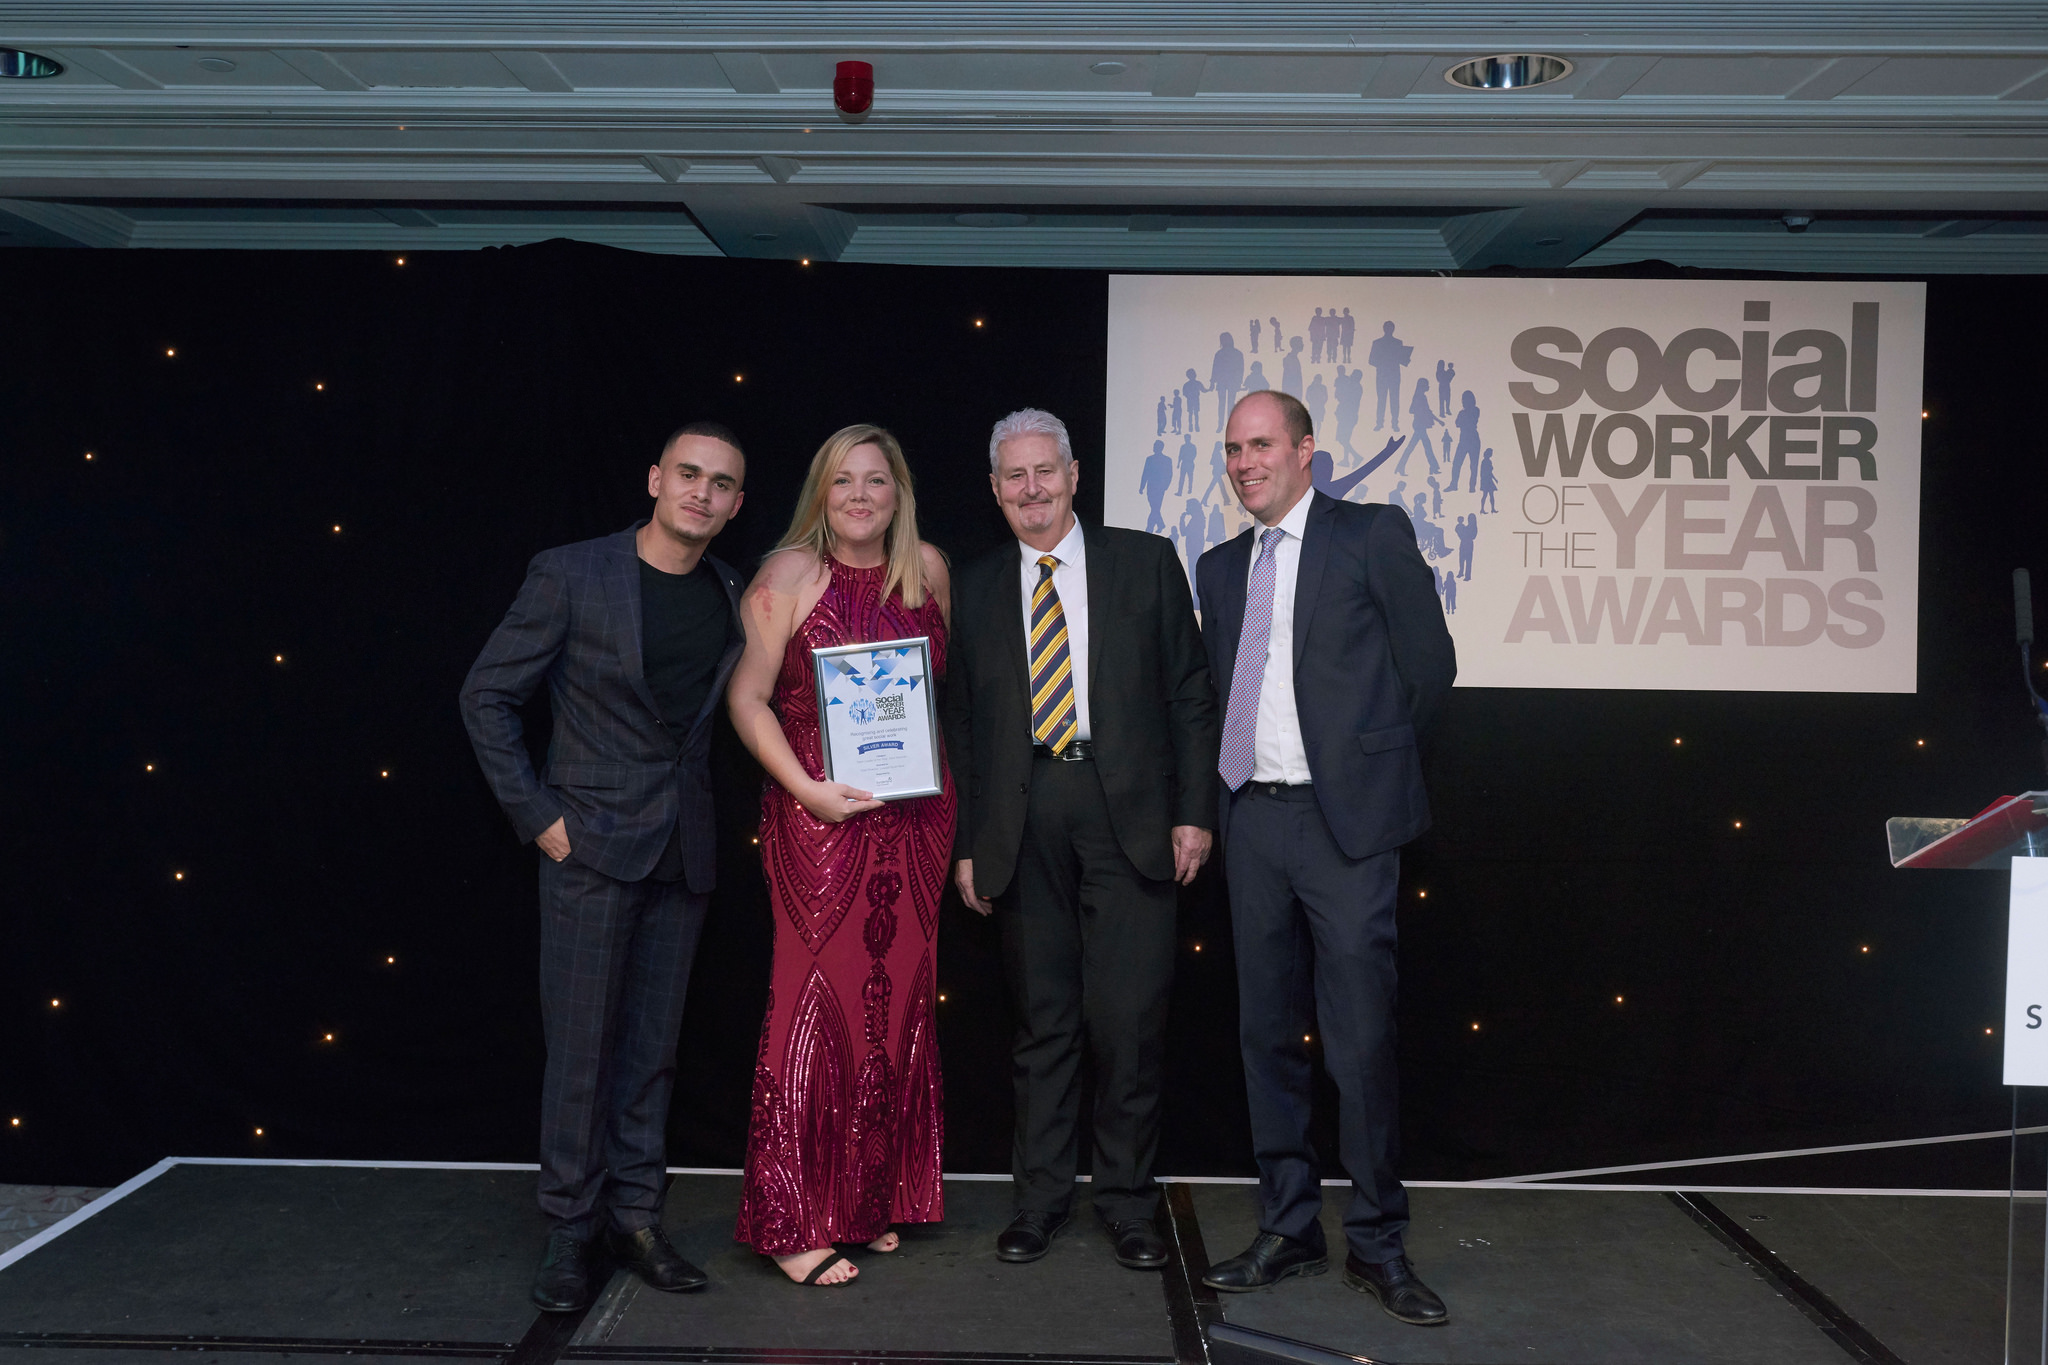 National recognition for Plymouth social workers